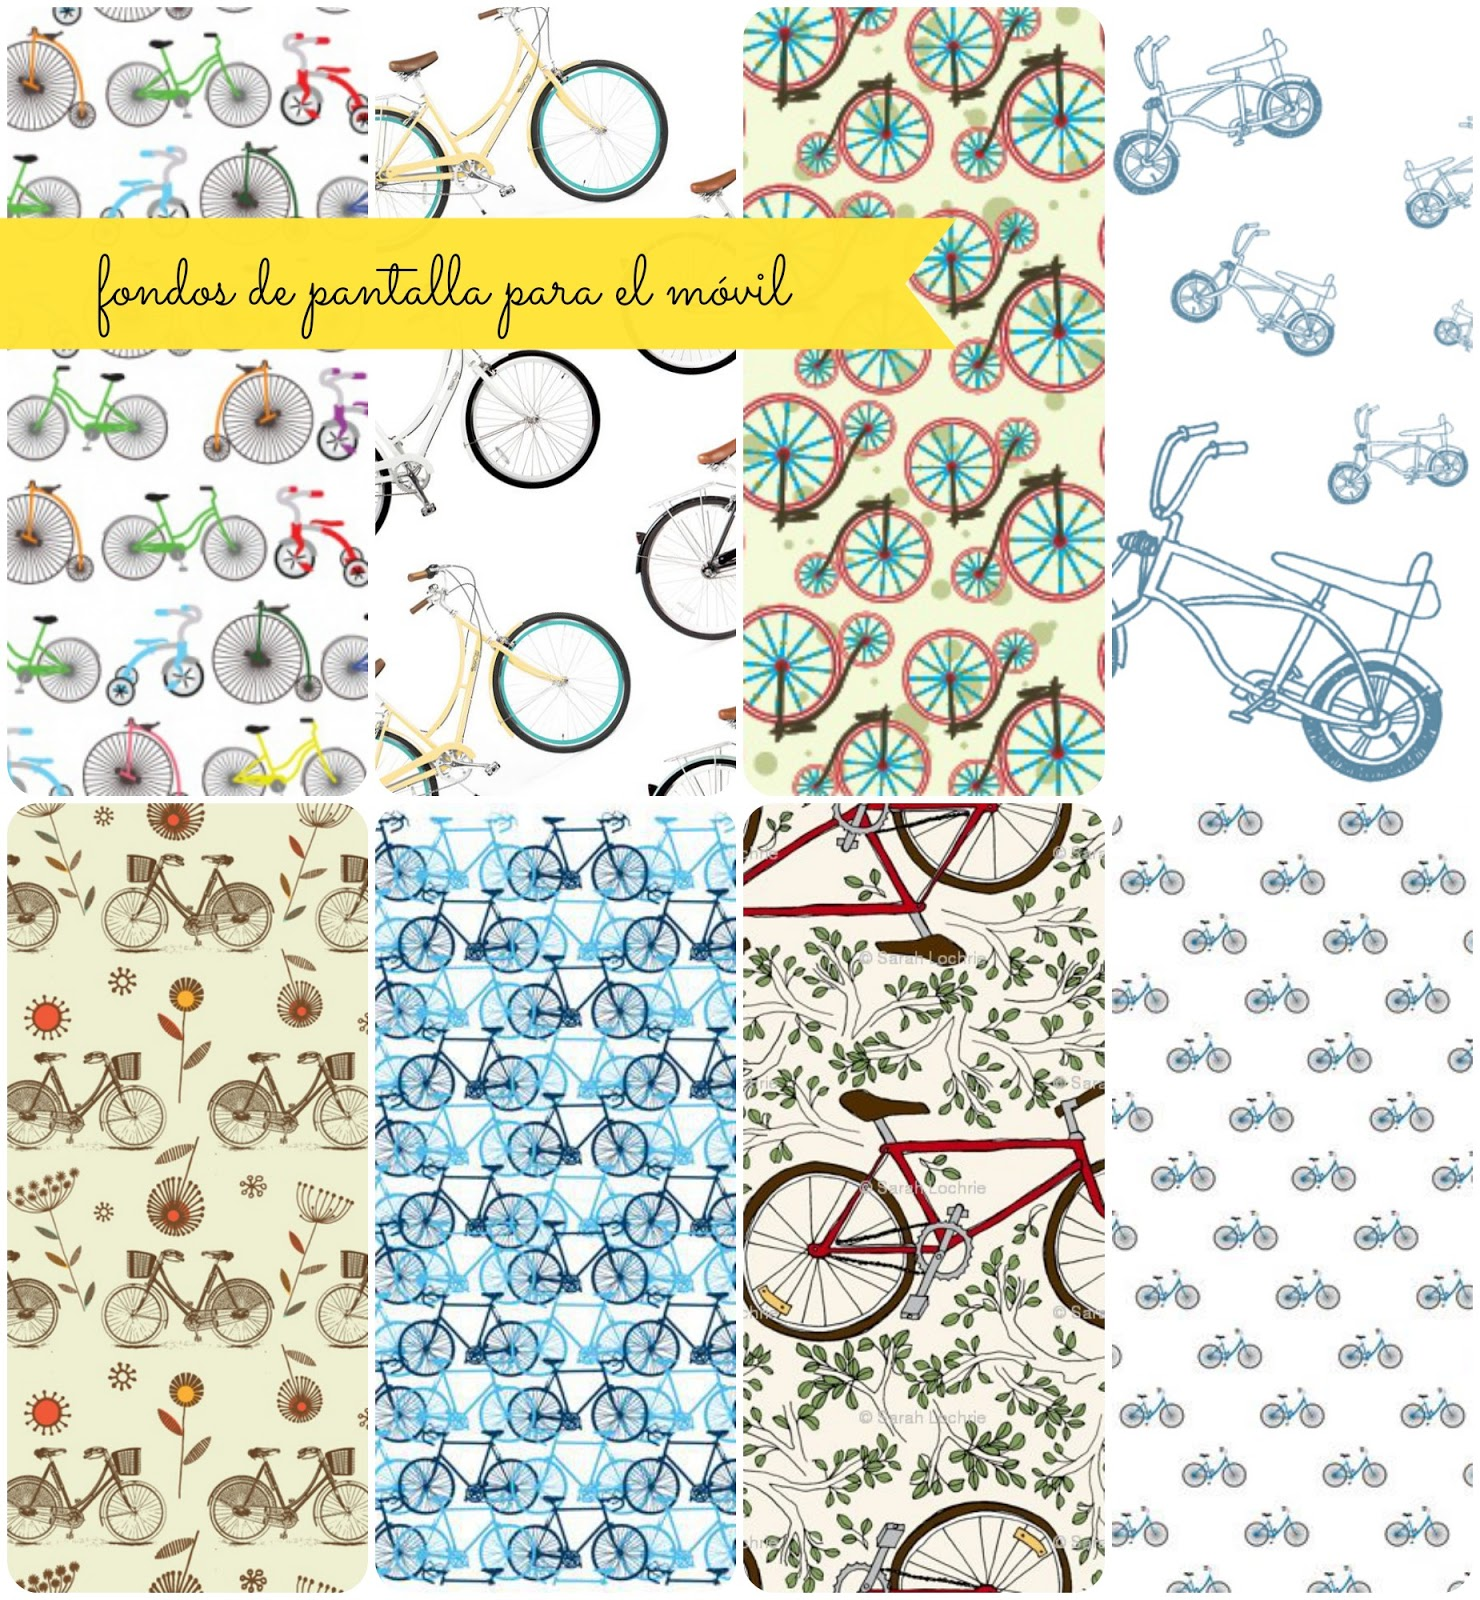 fondos de pantalla bicicletas bicycle para el móvil  wallpaper background iphone gratis free